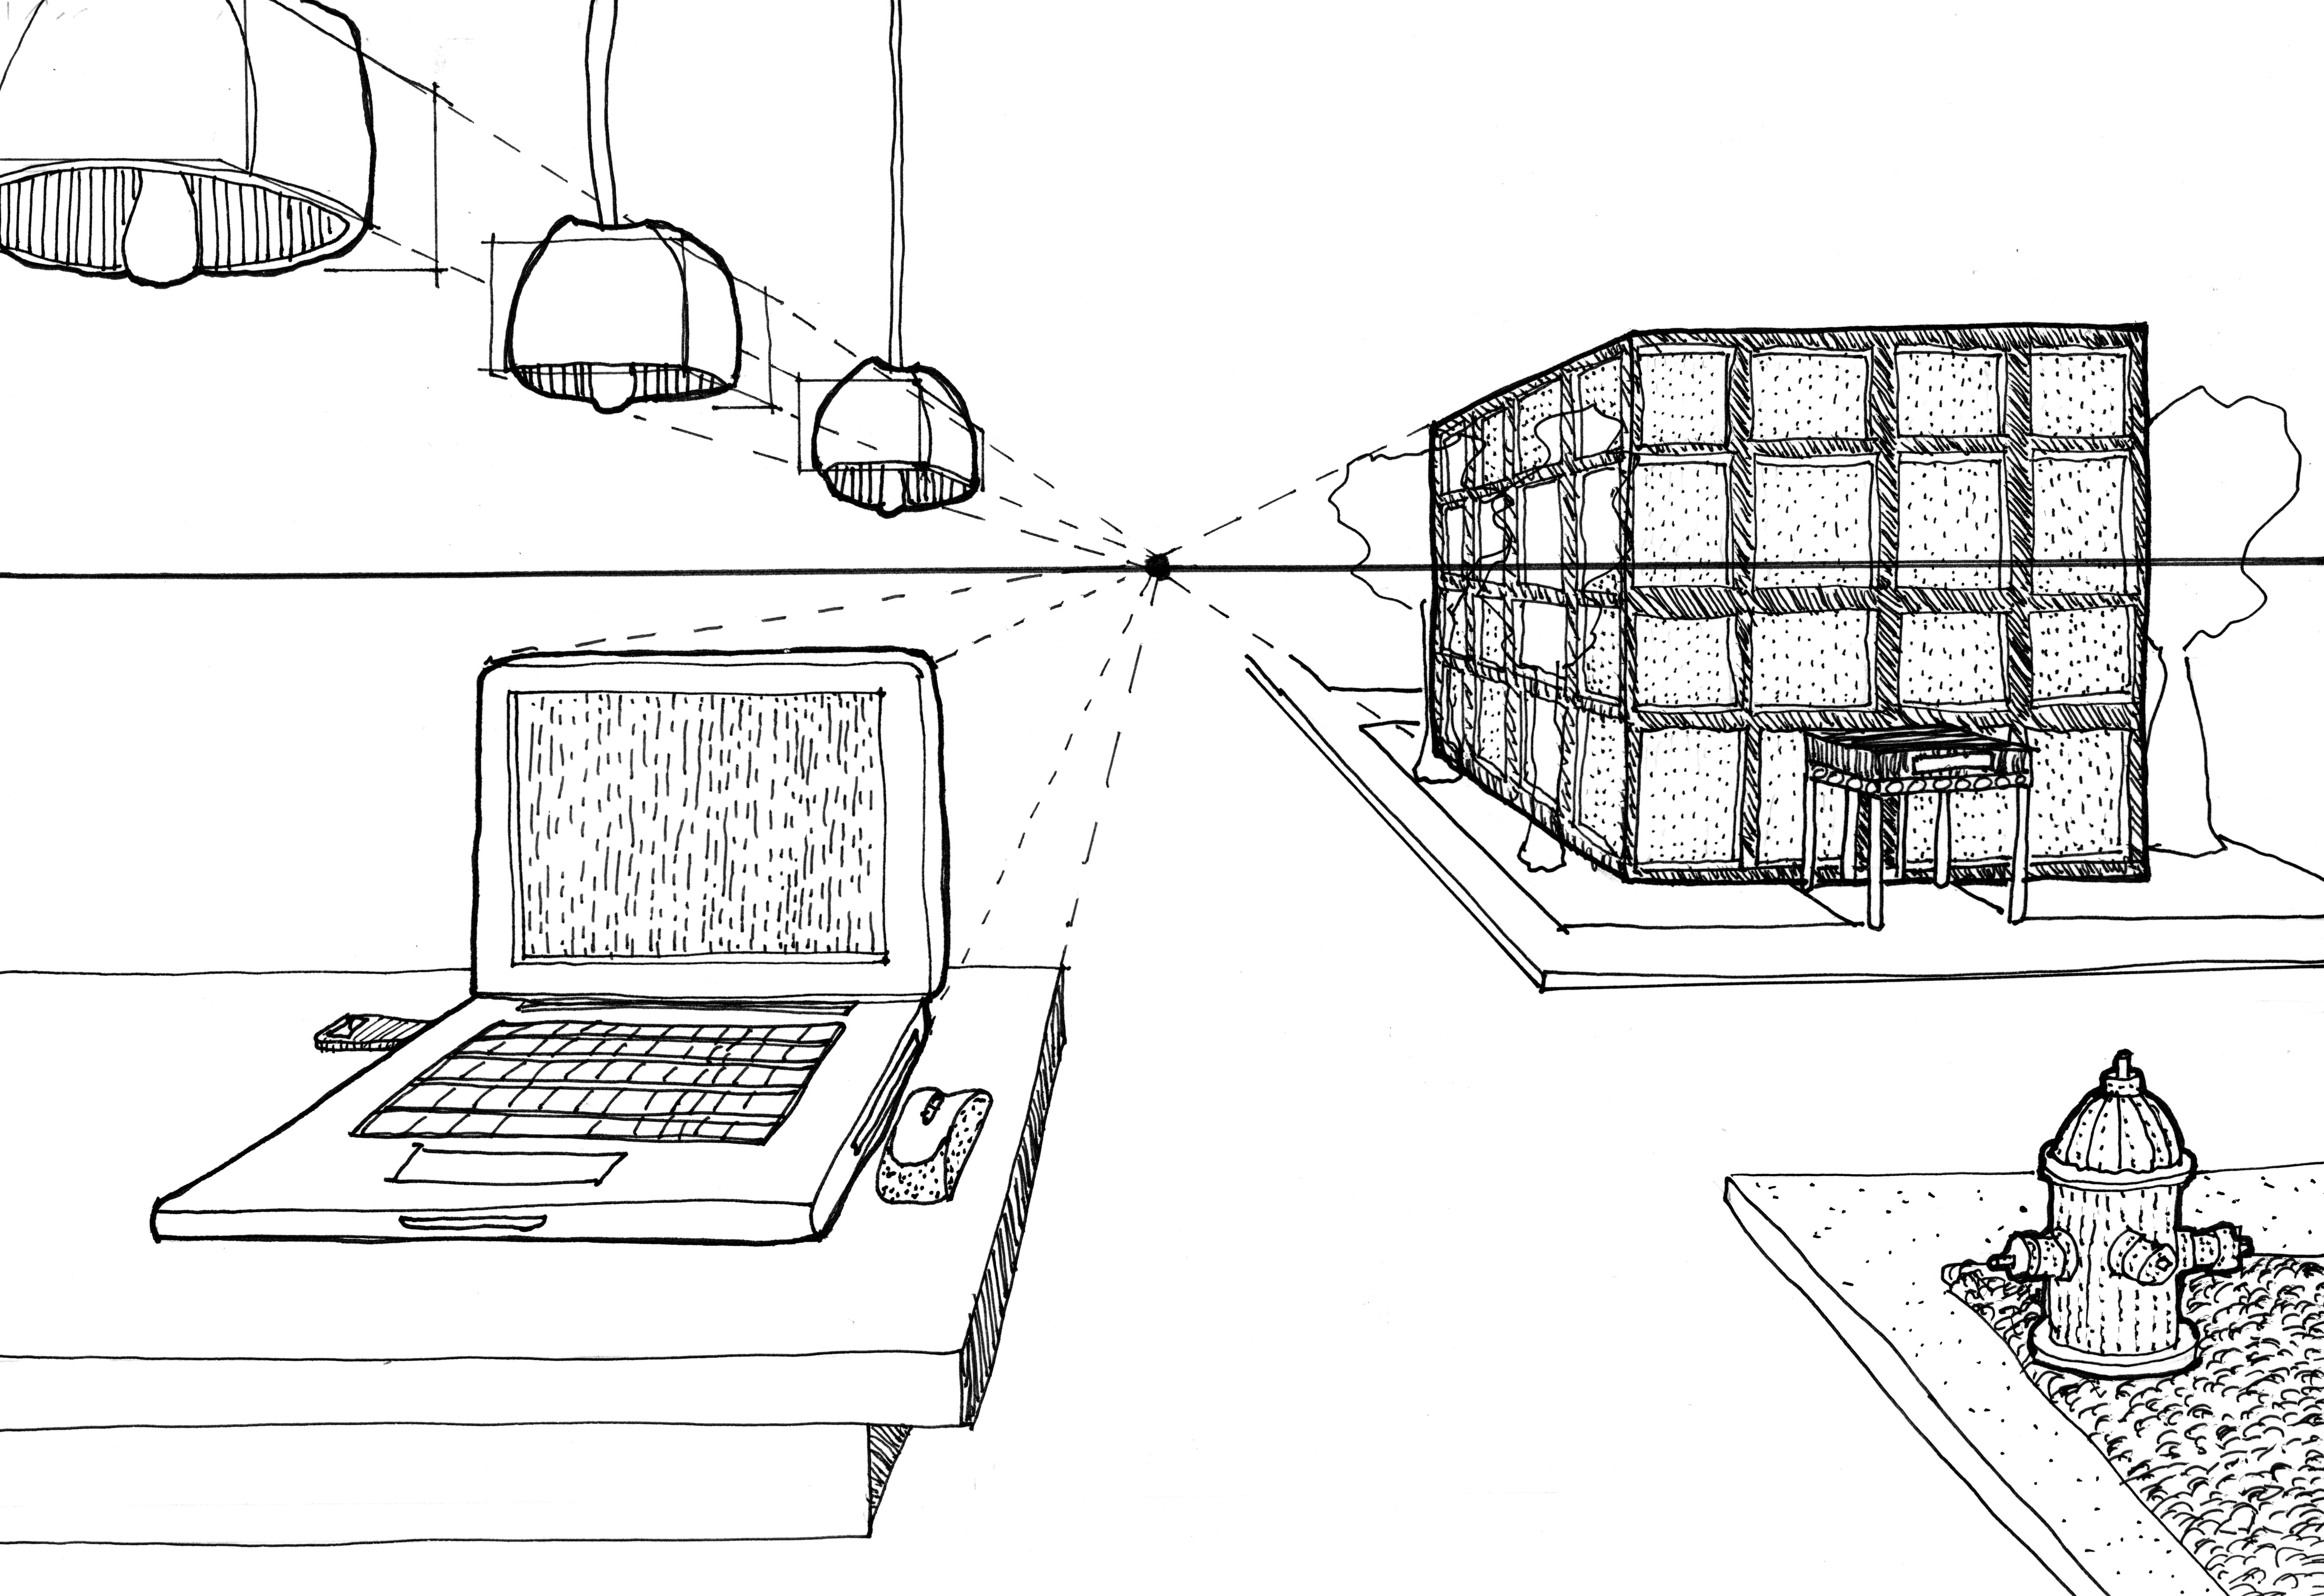 Drawn bookcase perspective 2 Comments Drawing demonstrations drawing